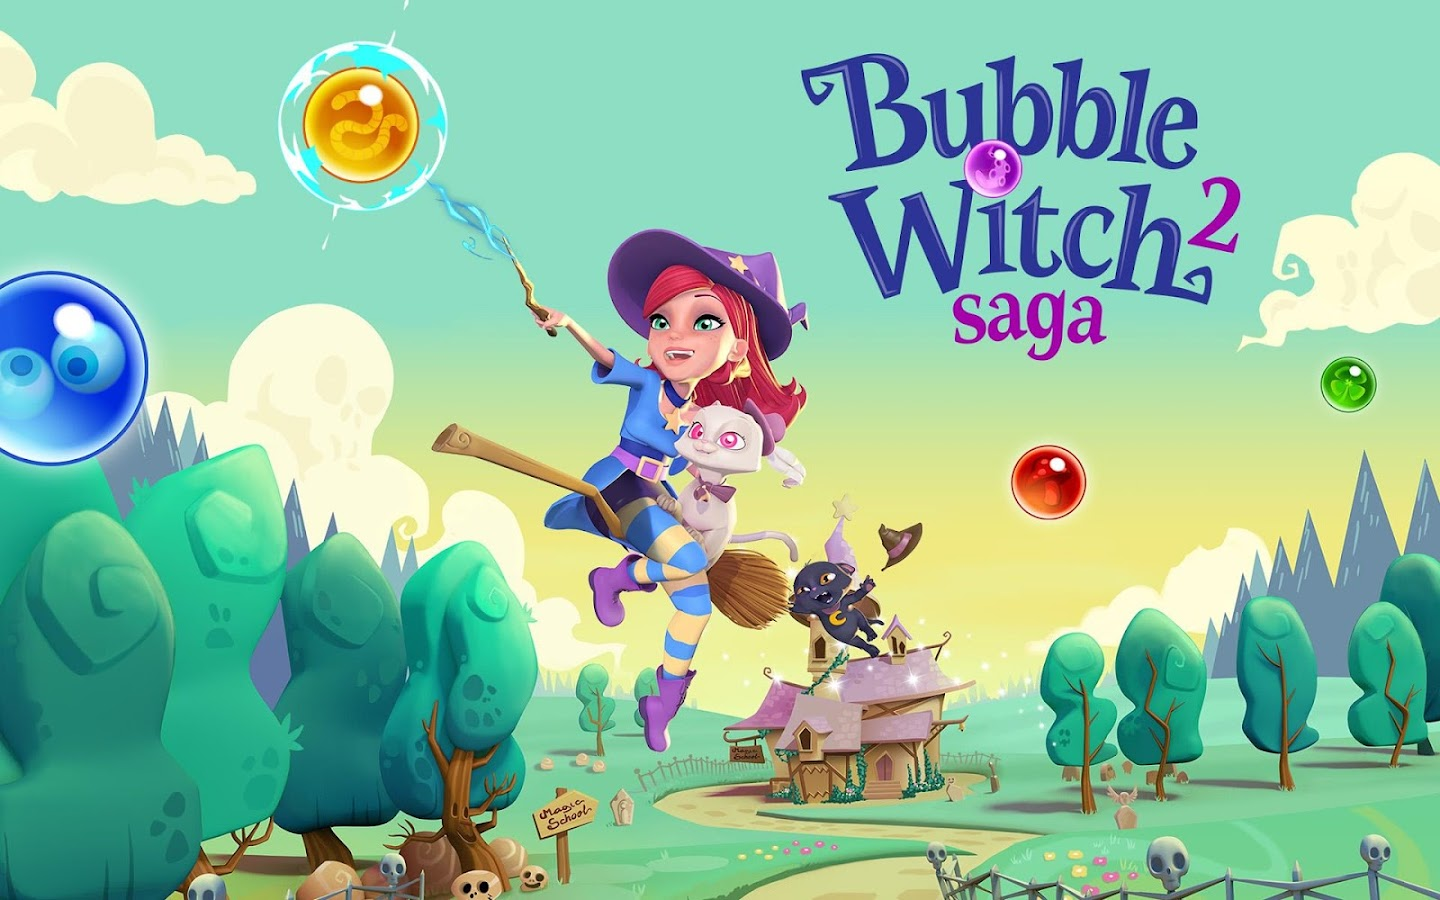 Bubble-Witch-2-Saga 34